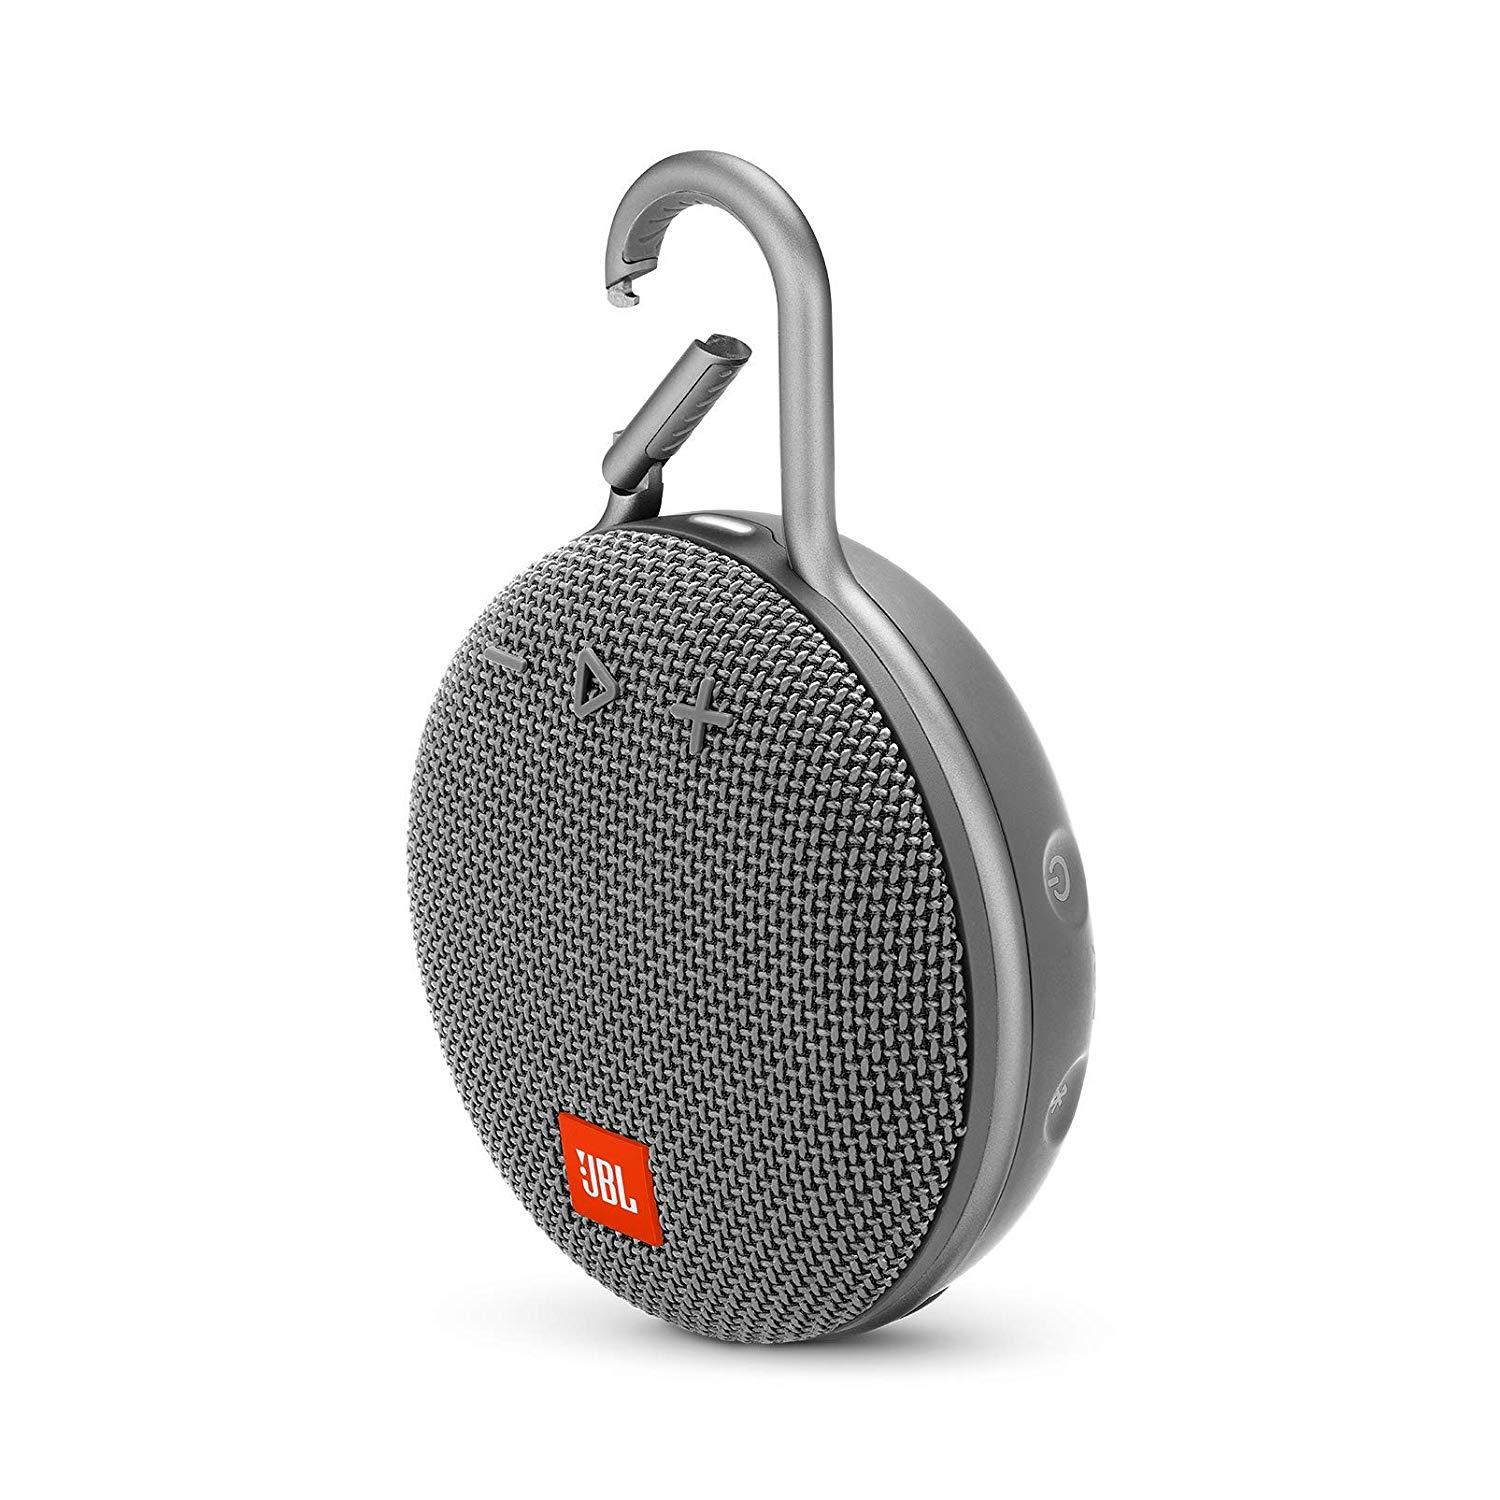 JBL Clip 3 Portable Waterproof Wireless Bluetooth Speaker - Gray - CLIP3-GRAY